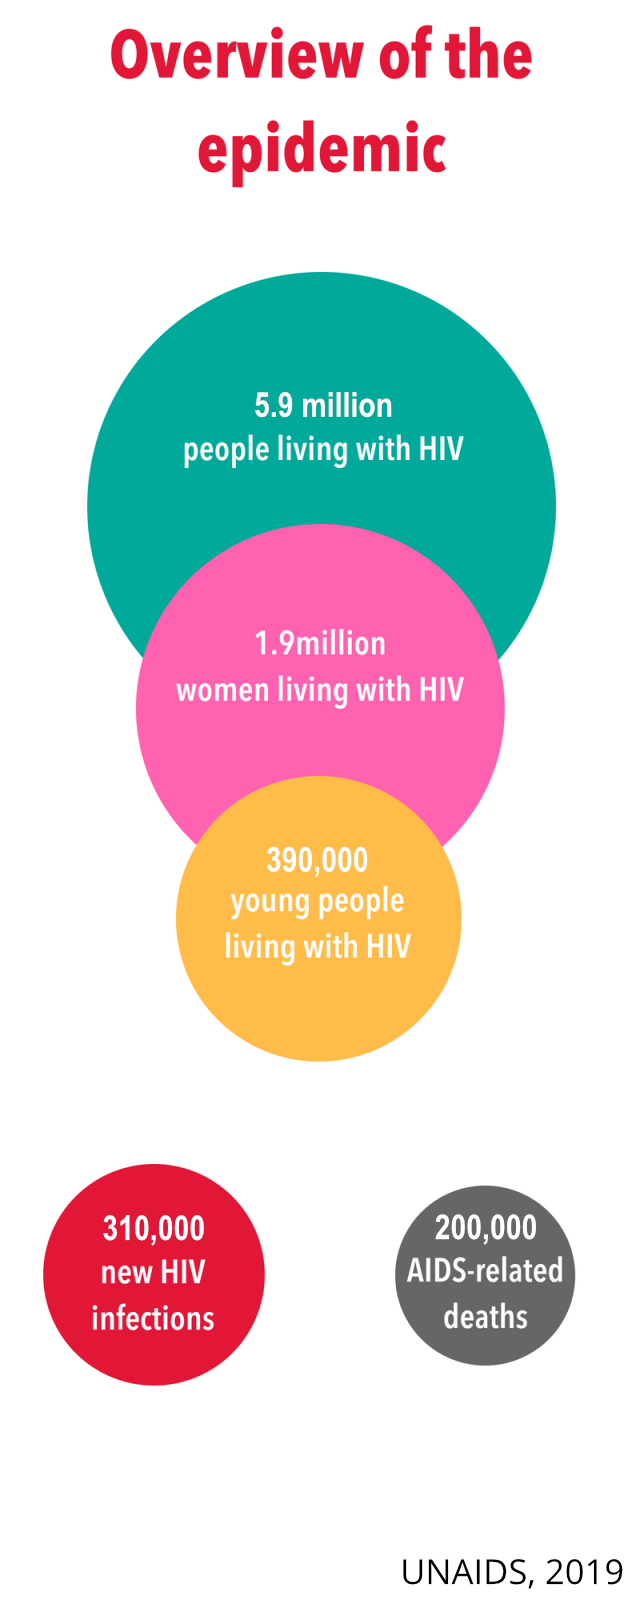 Overview of the HIV/AIDS Epidemic in the Asia-Pacific Region, UNAIDS 2019